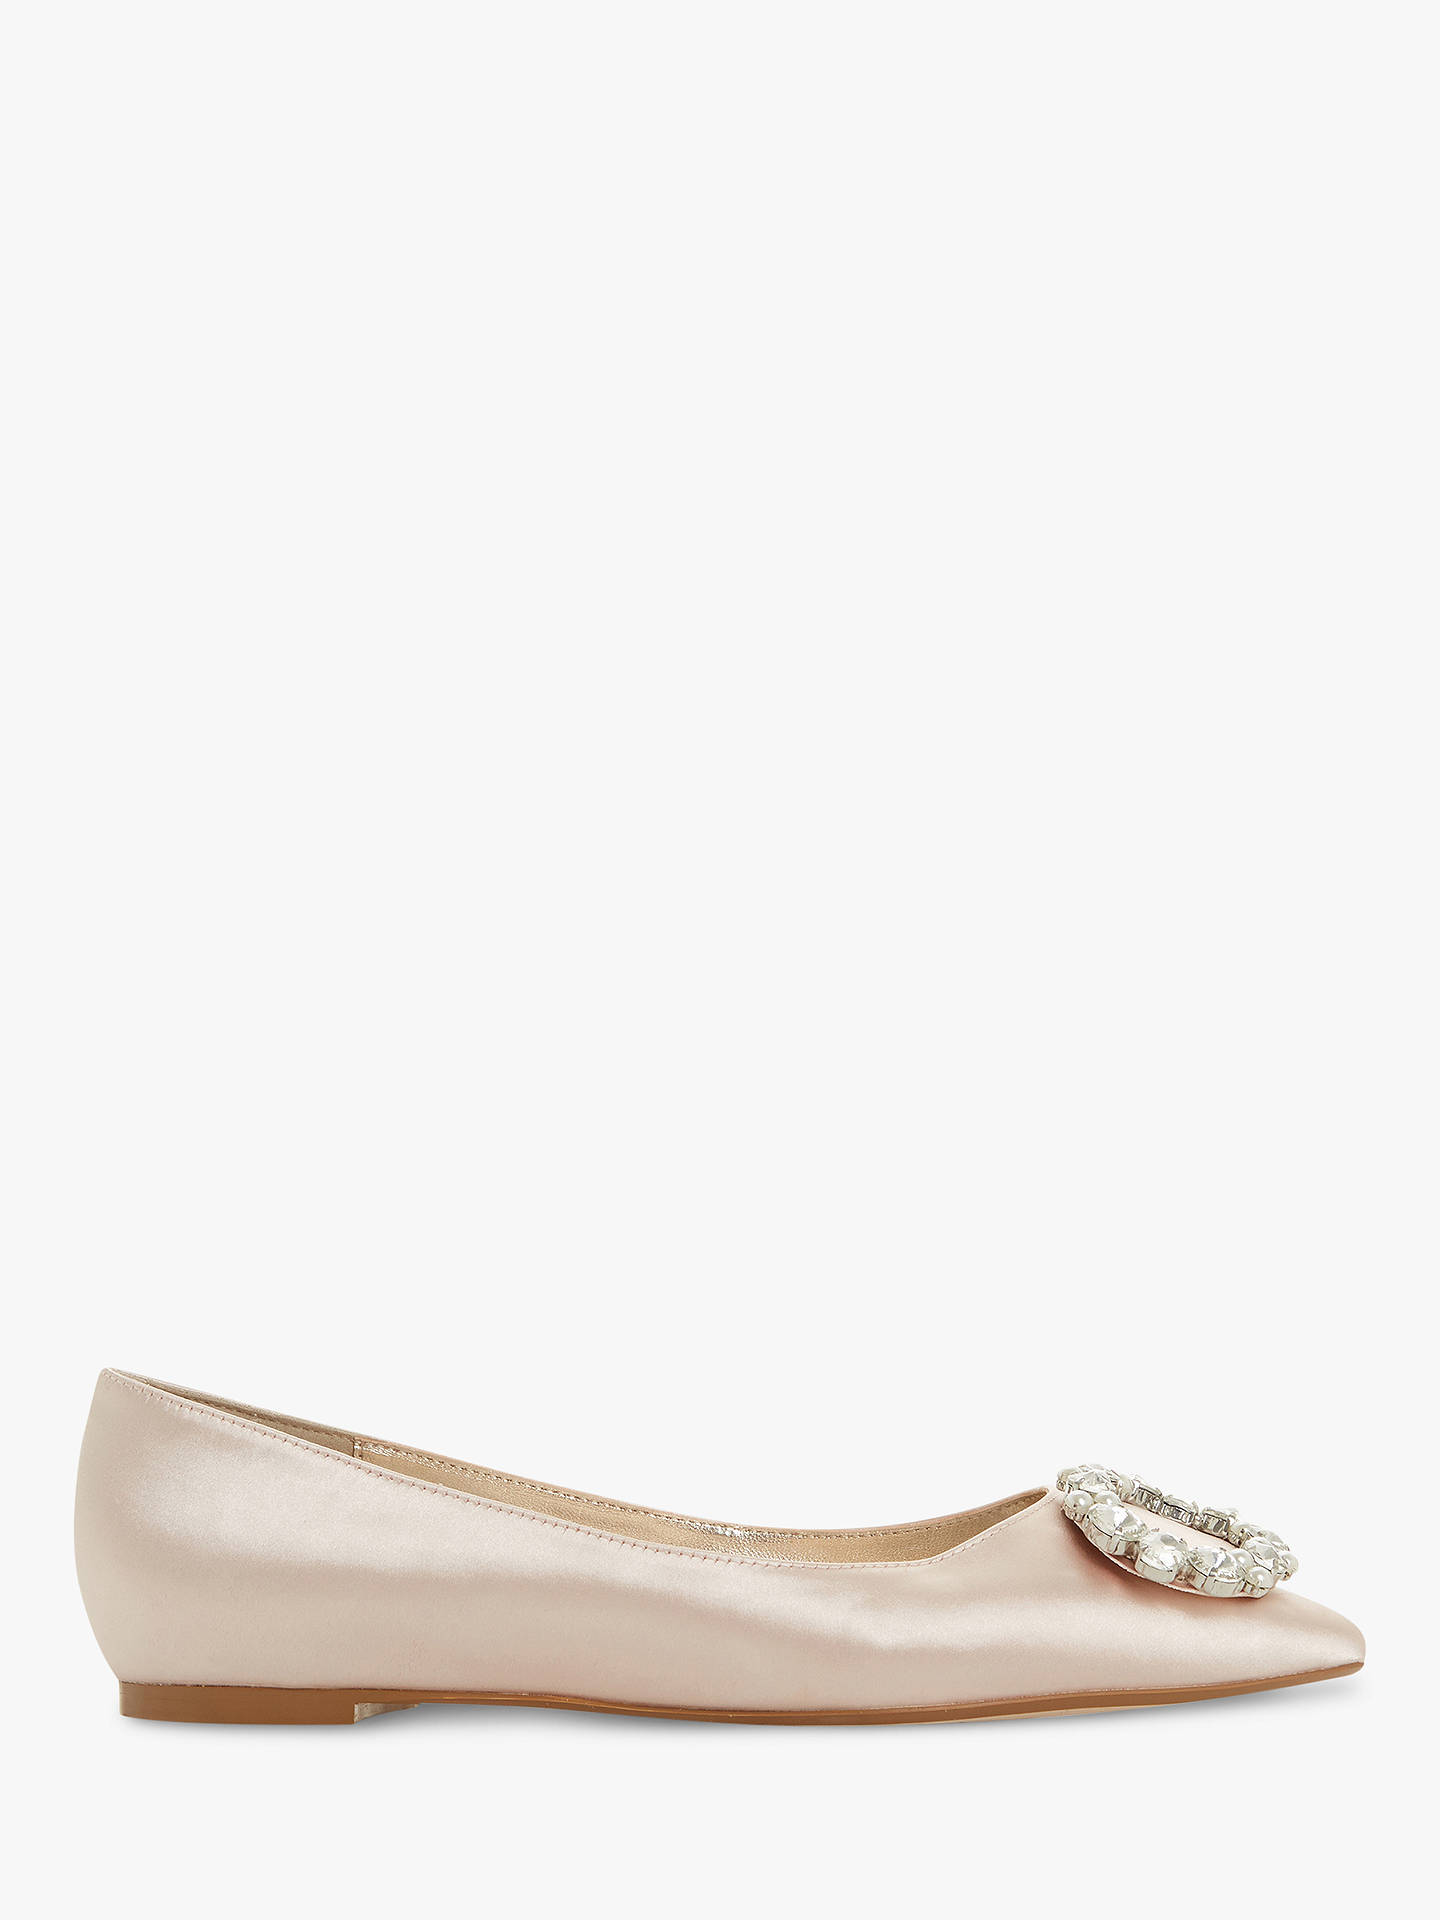 Toe Pumps At Embellished Adoreable Ballet Pointed Satin Dune Nude wUSqHW